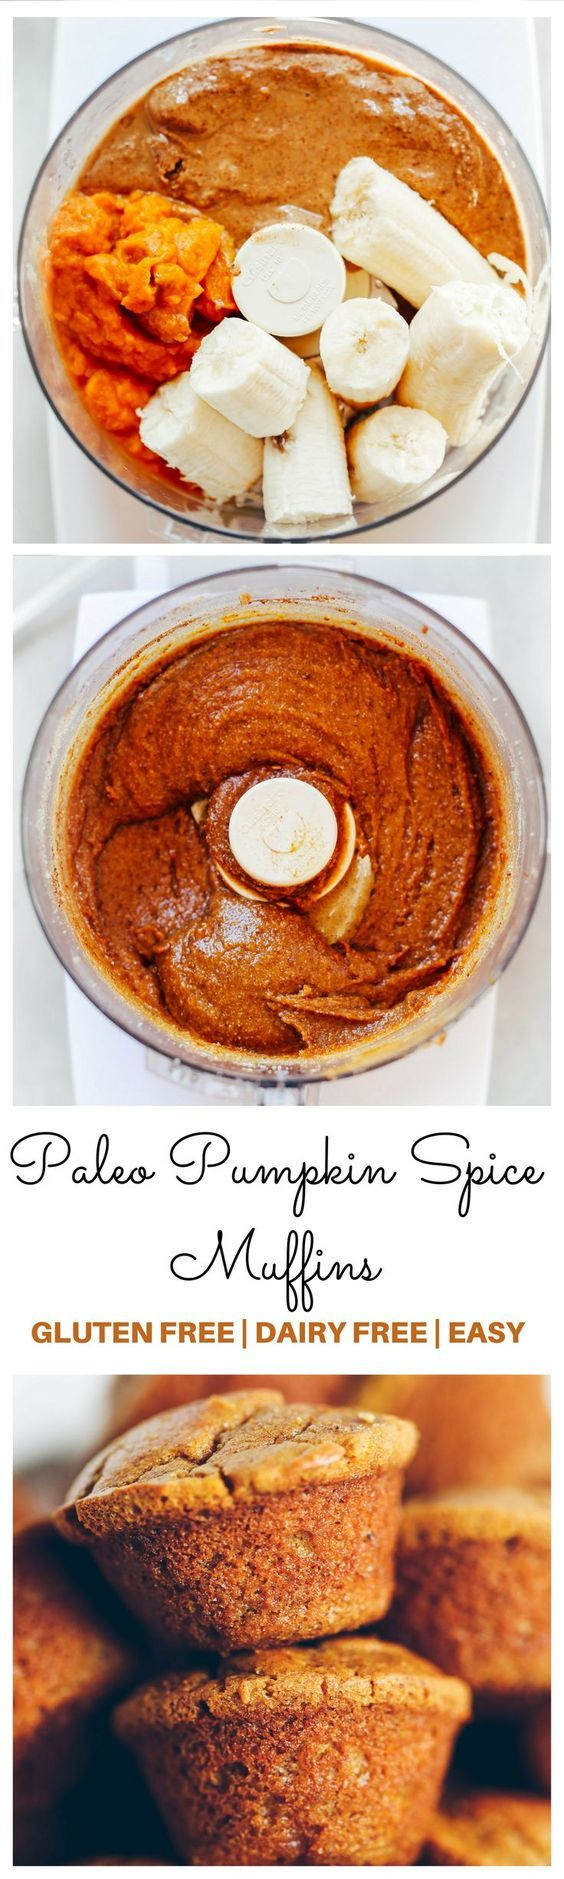 Wild Salt Spirit: 5 Minute, 71 calorie paleo pumpkin spice protein muffins. Flourless pumpkin banana muffins make for easy meal prep- perfect for cozy fall breakfasts or post workout fuel! Naturally sweetened, with added health benefits and protein from collagen peptides. Paleo pumpkin muffins. Flourless pumpkin muffins. Easy gluten free pumpkin muffins. Easy paleo pumpkin muffin recipe. Best healthy paleo pumpkin muffins.